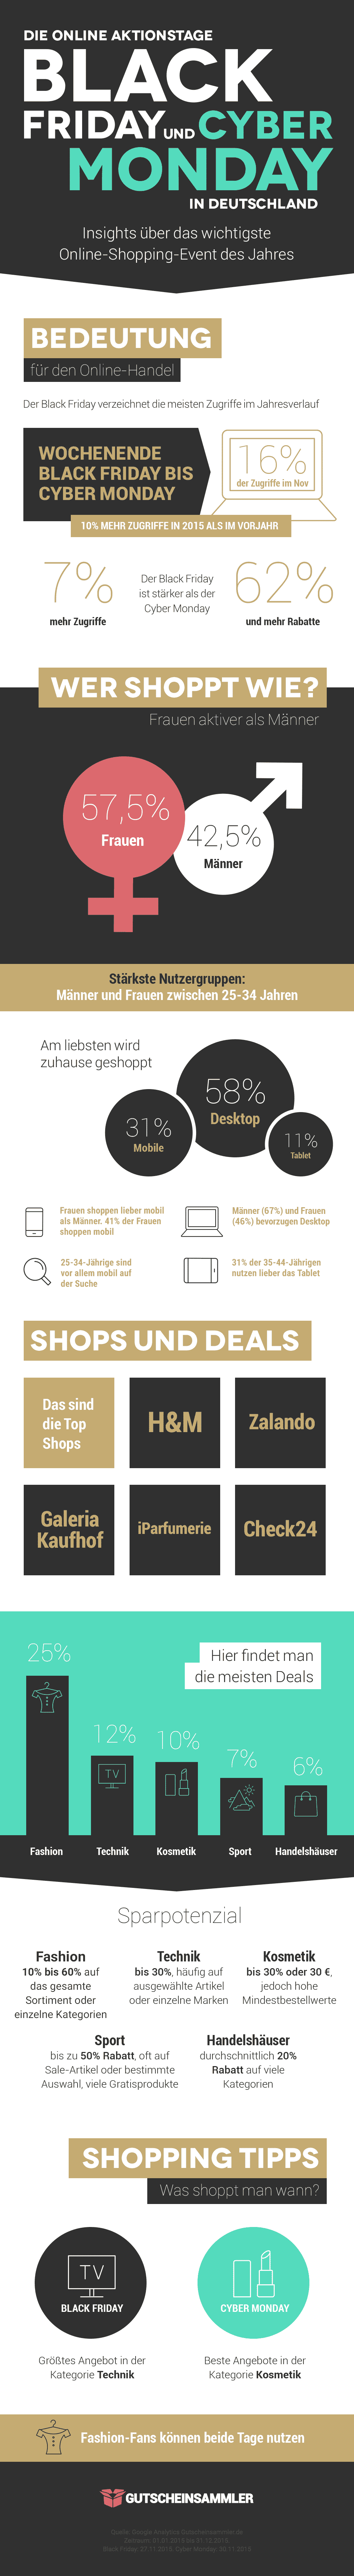 Infografik: Black Friday und Cyber Monday in Deutschland 2016